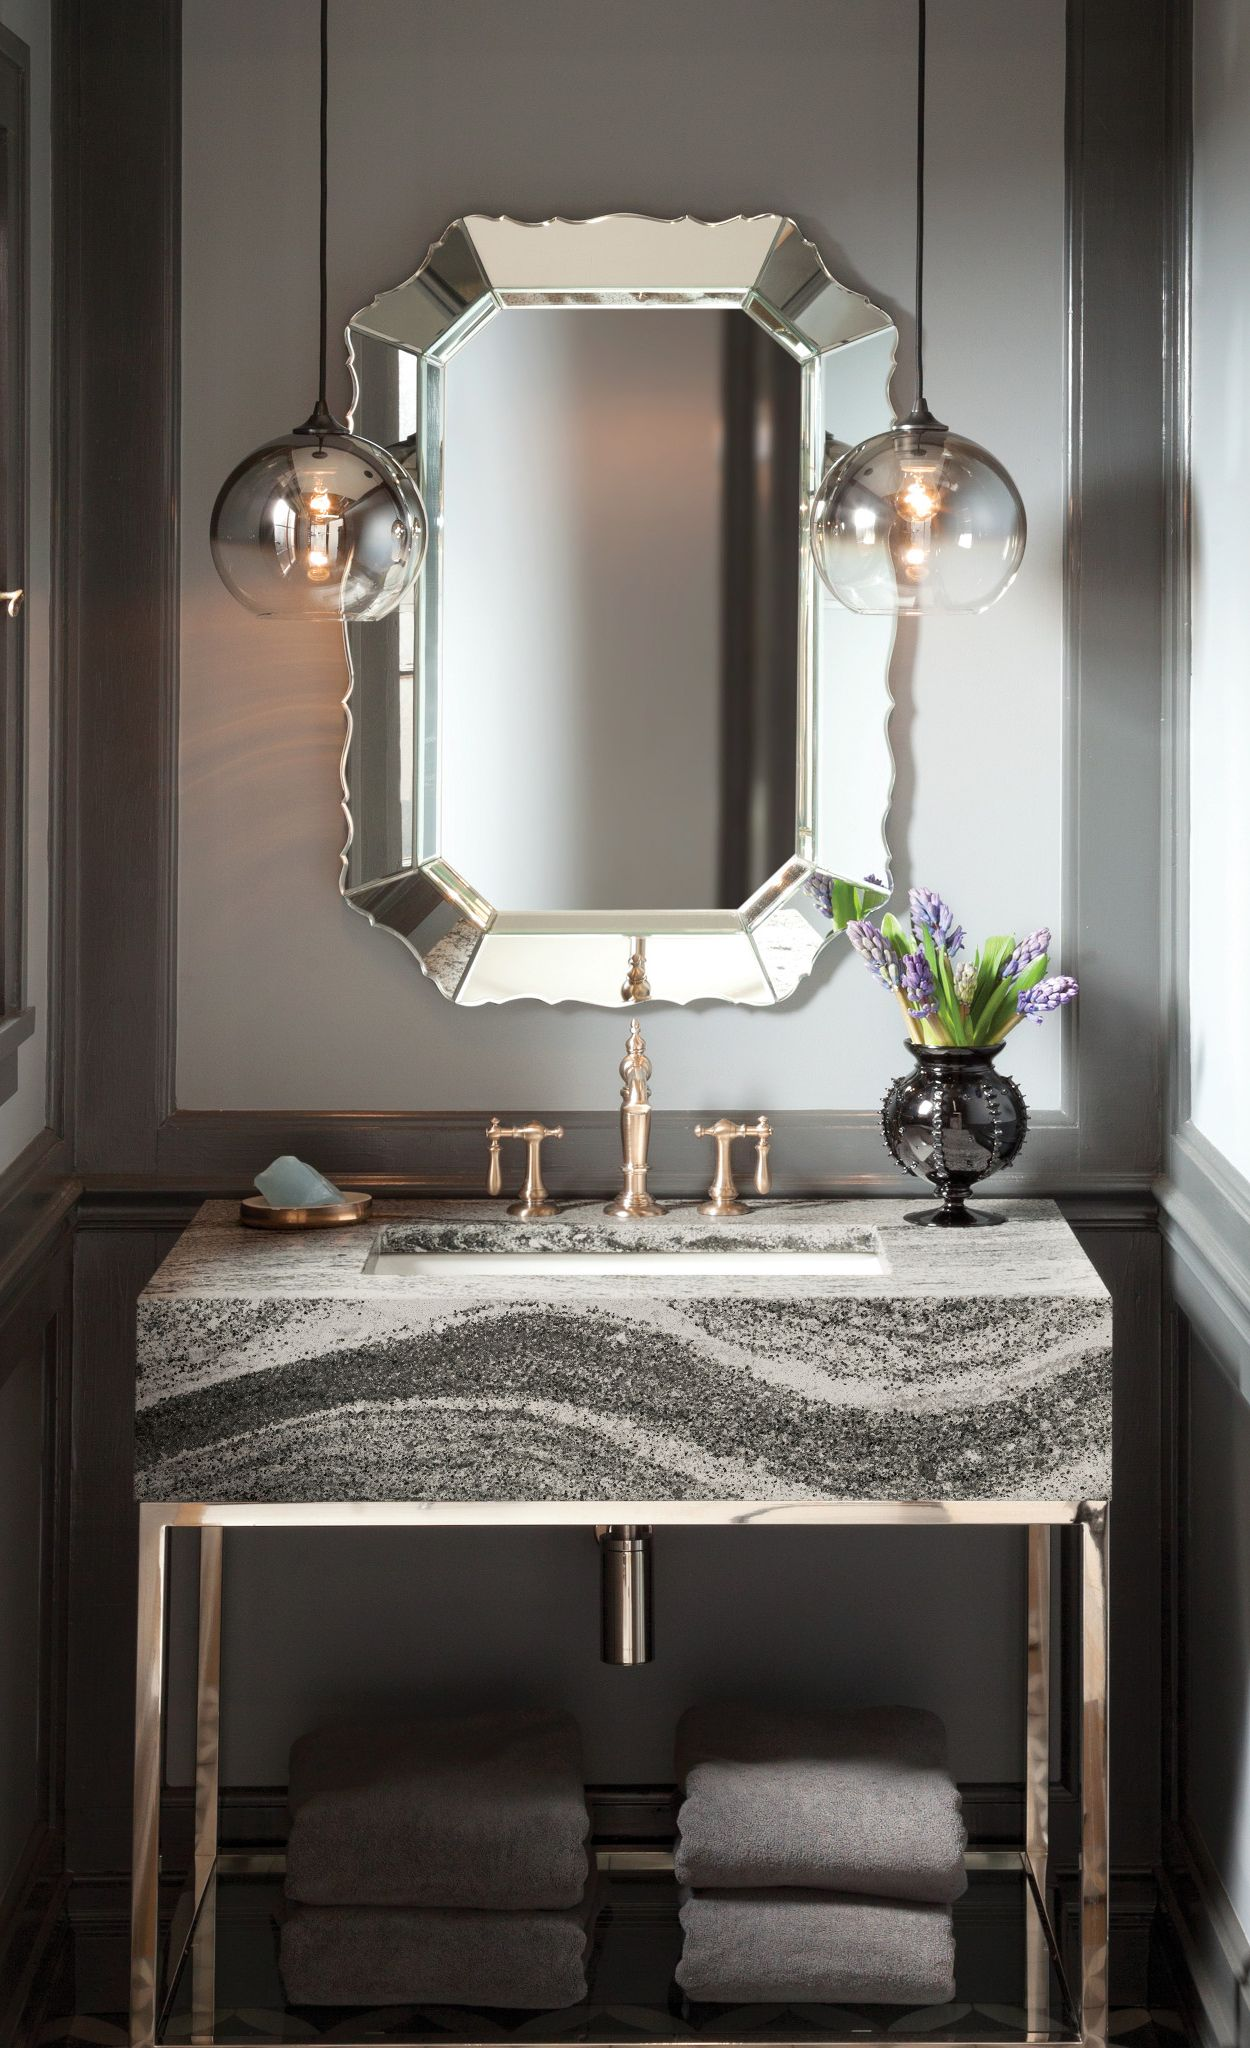 Add Cambria Roxwell to a Restoration Hardware vanity for a glam look.